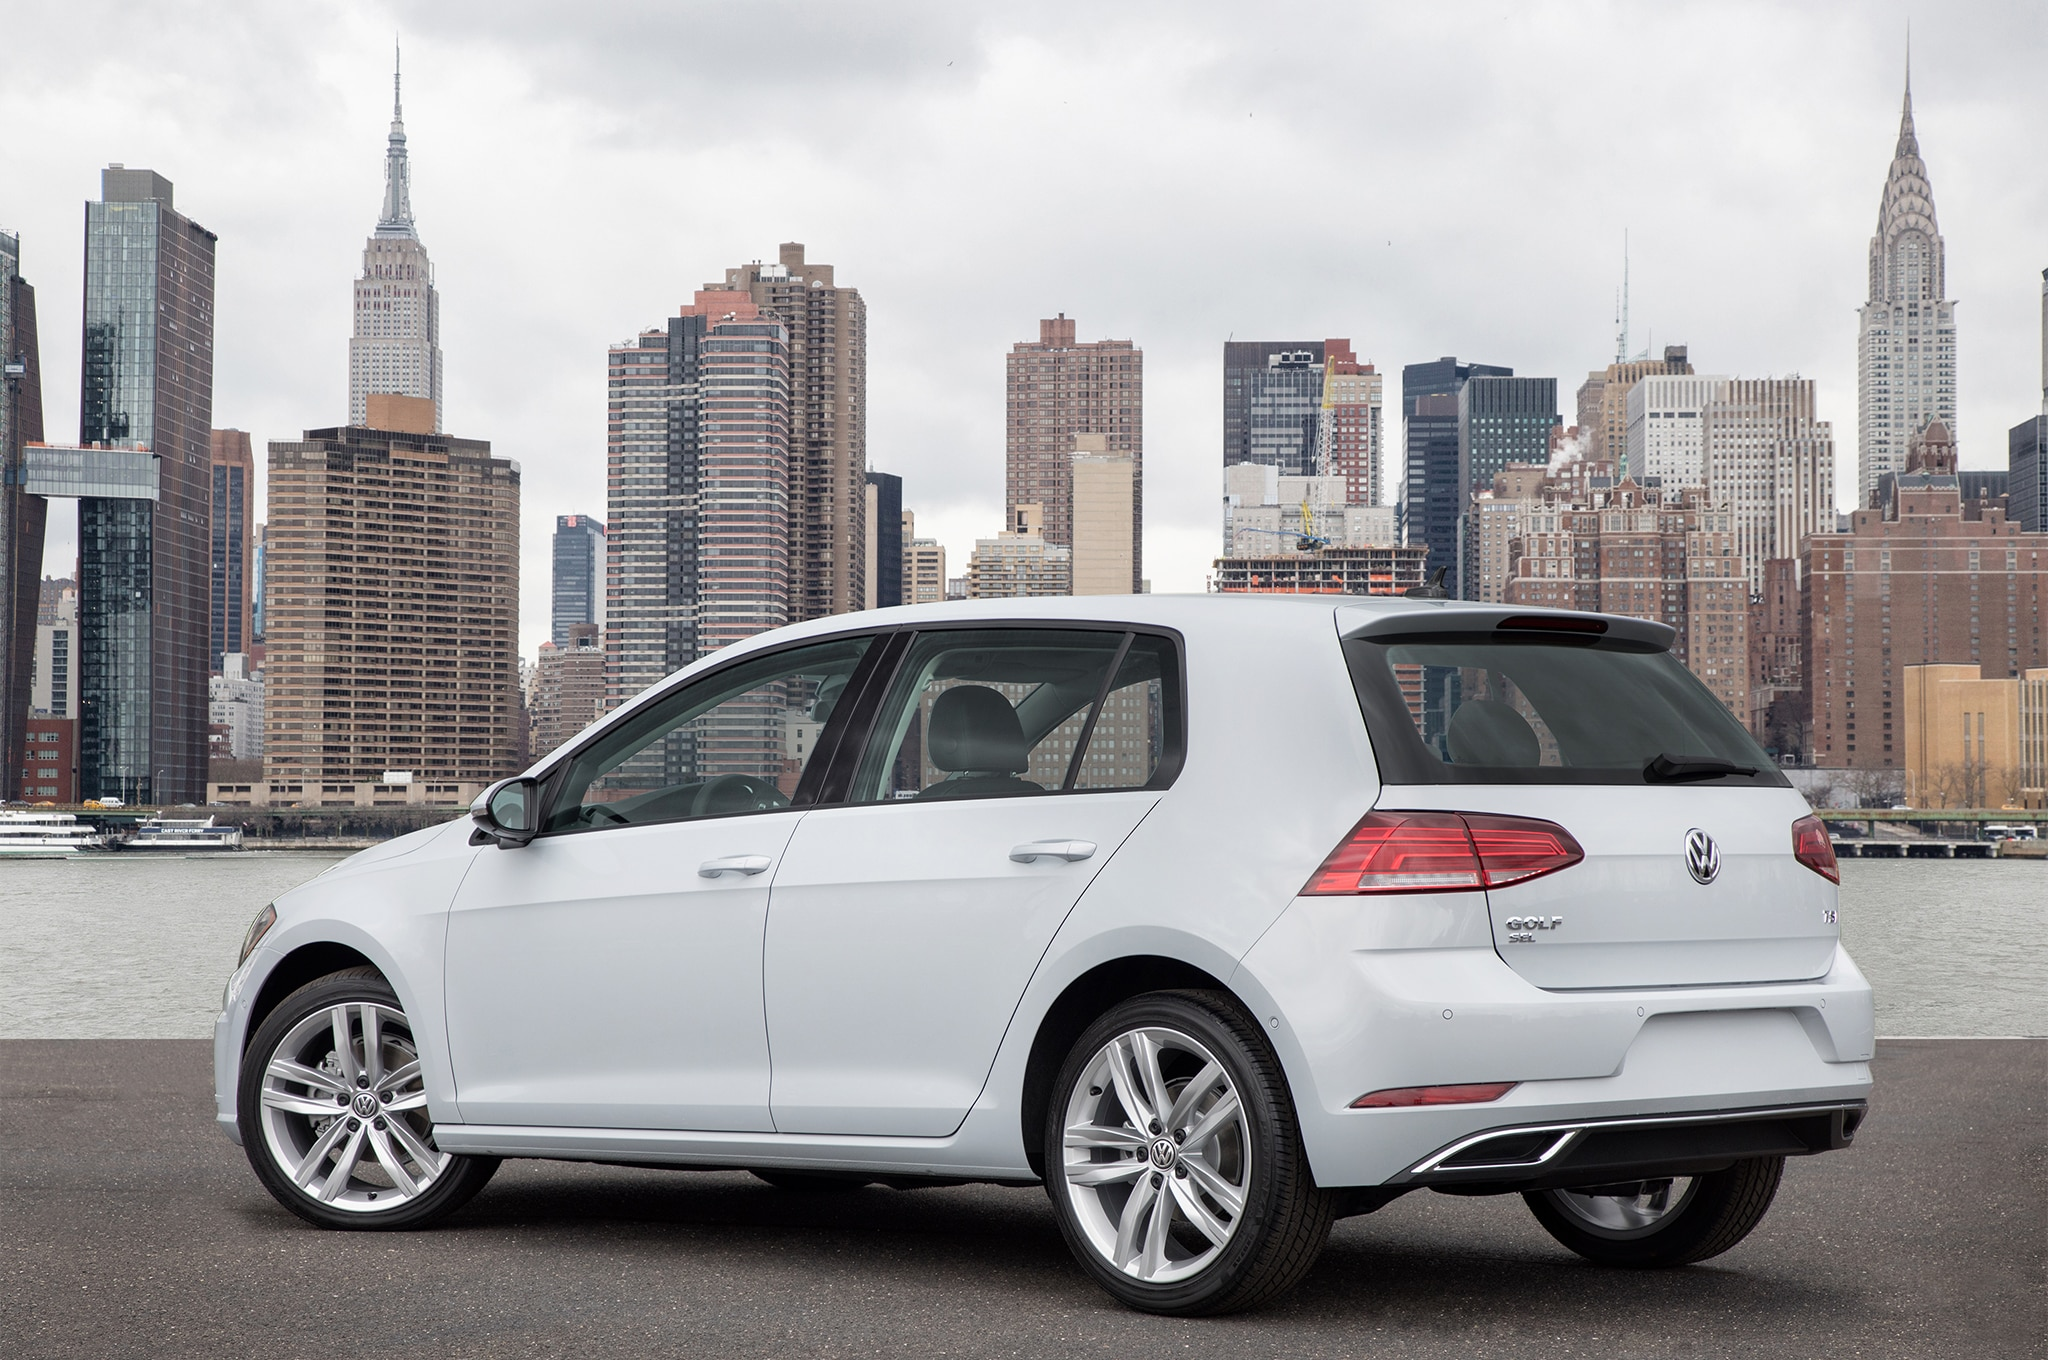 2018-Volkswagen-Golf-rear-three-quarter-1